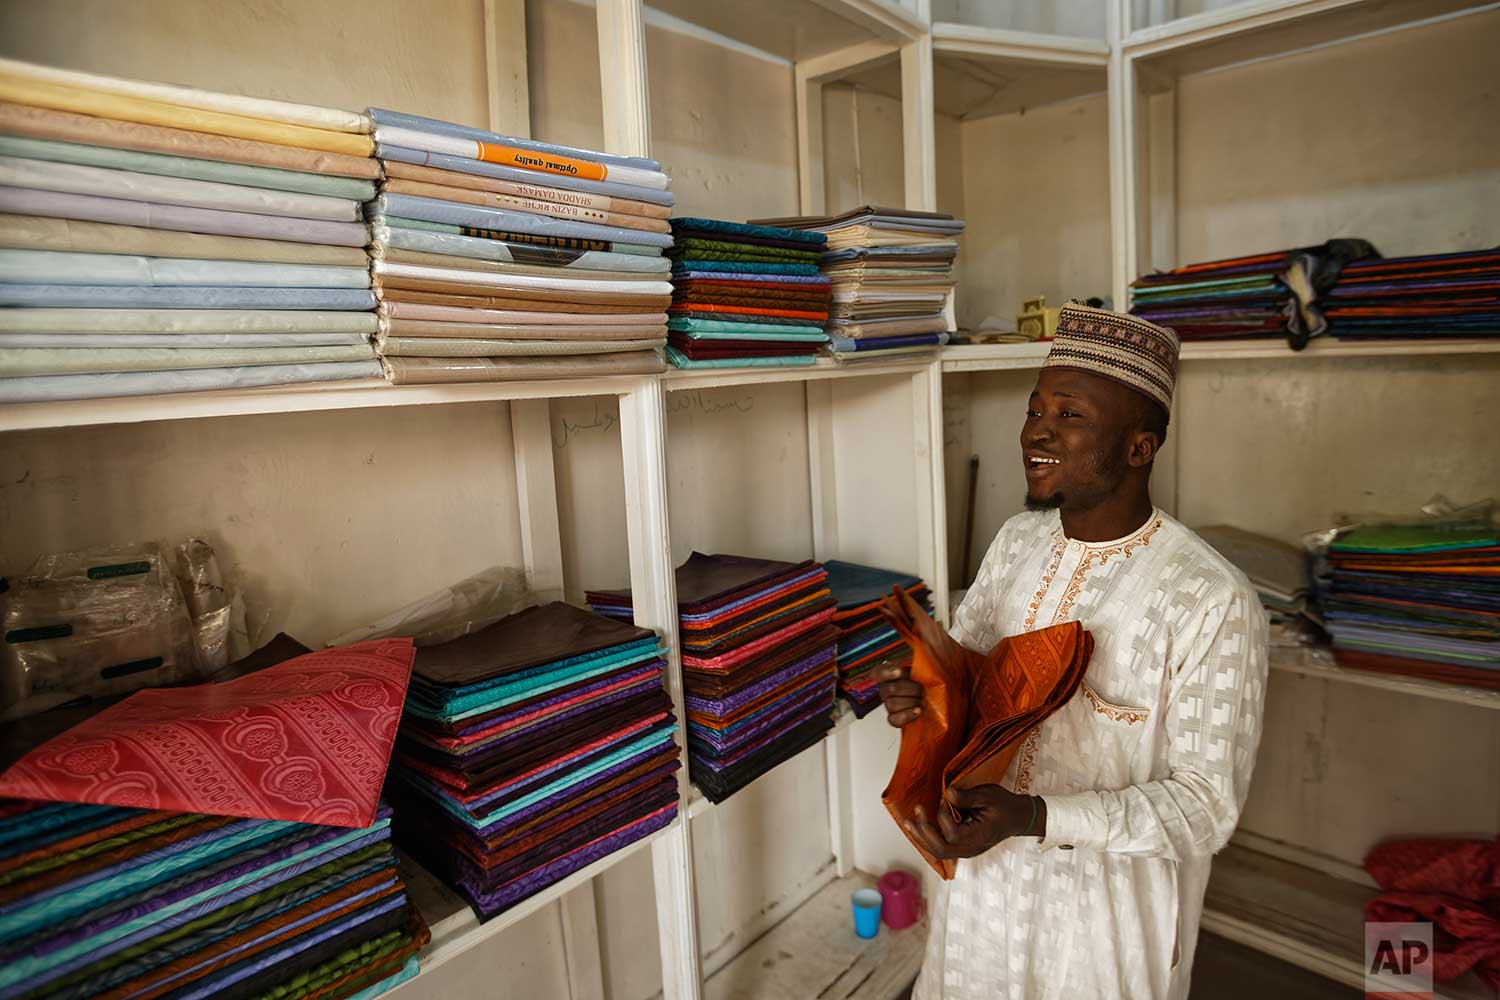 In this photo taken Tuesday, Feb. 19, 2019, a shopkeeper sells dyed fabric made in China at his stall in the market in Kano, northern Nigeria. (AP Photo/Ben Curtis)